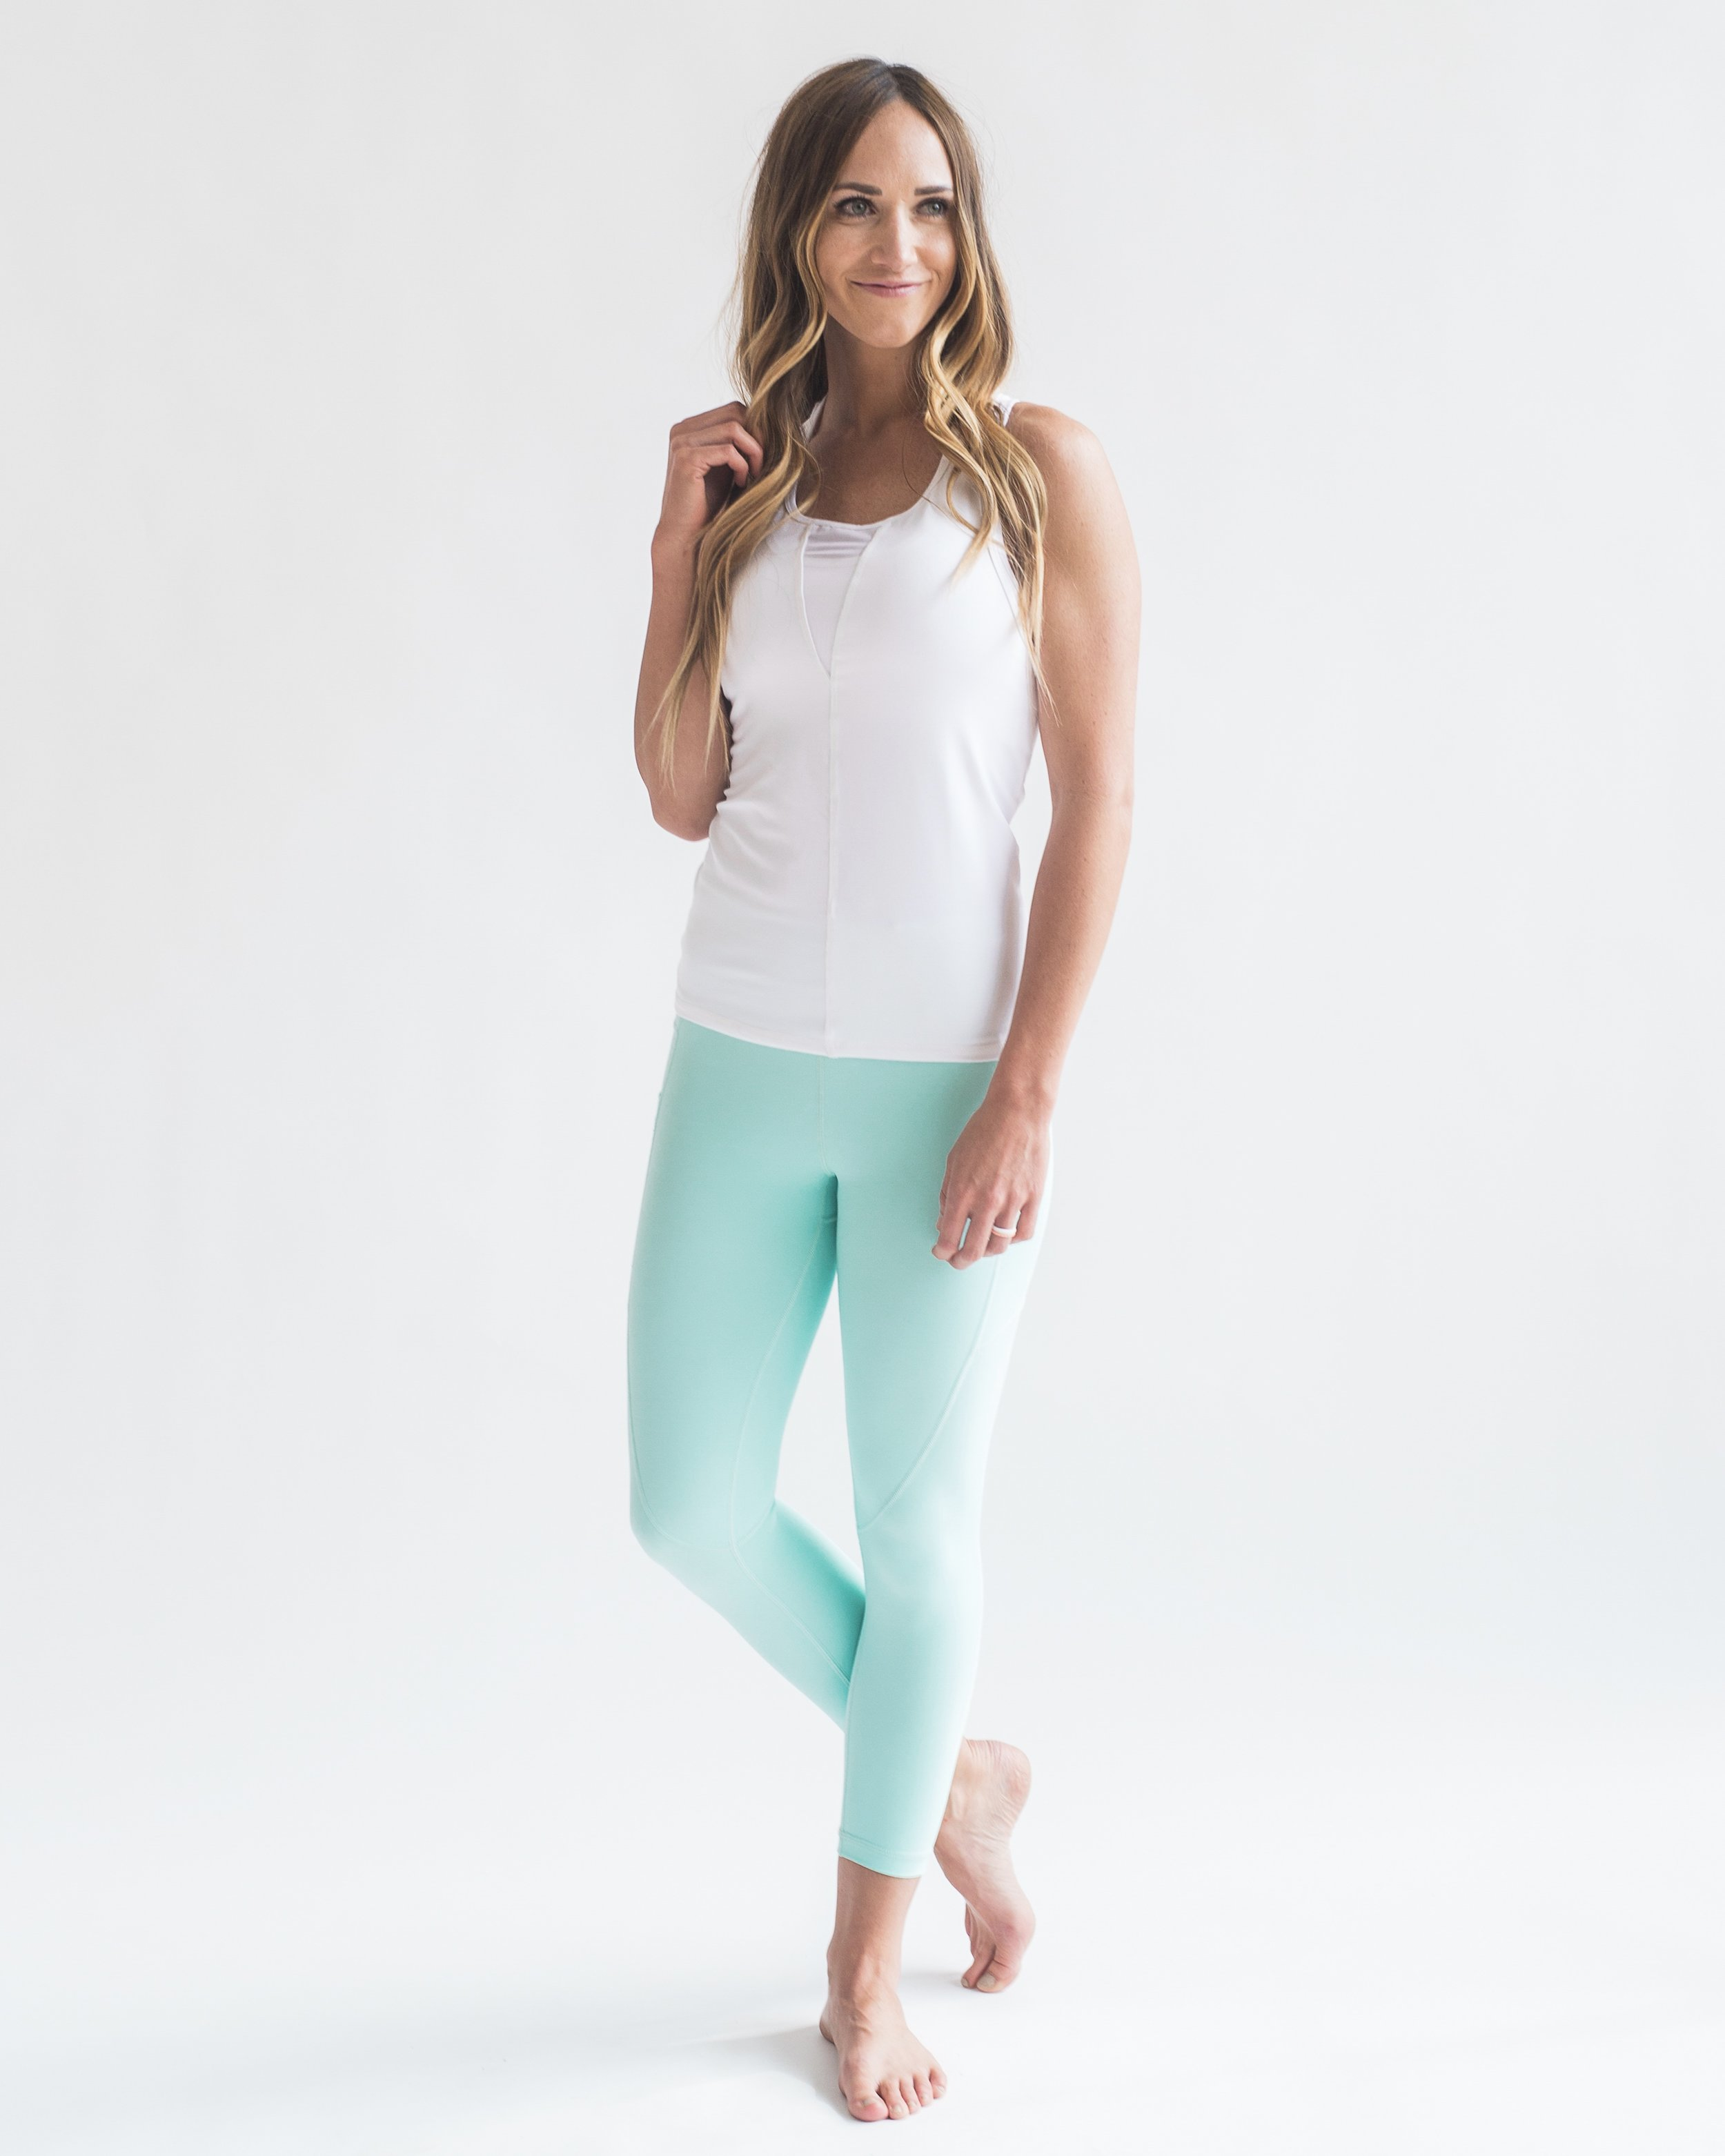 1638-White_Effortless_Tank-front.jpg